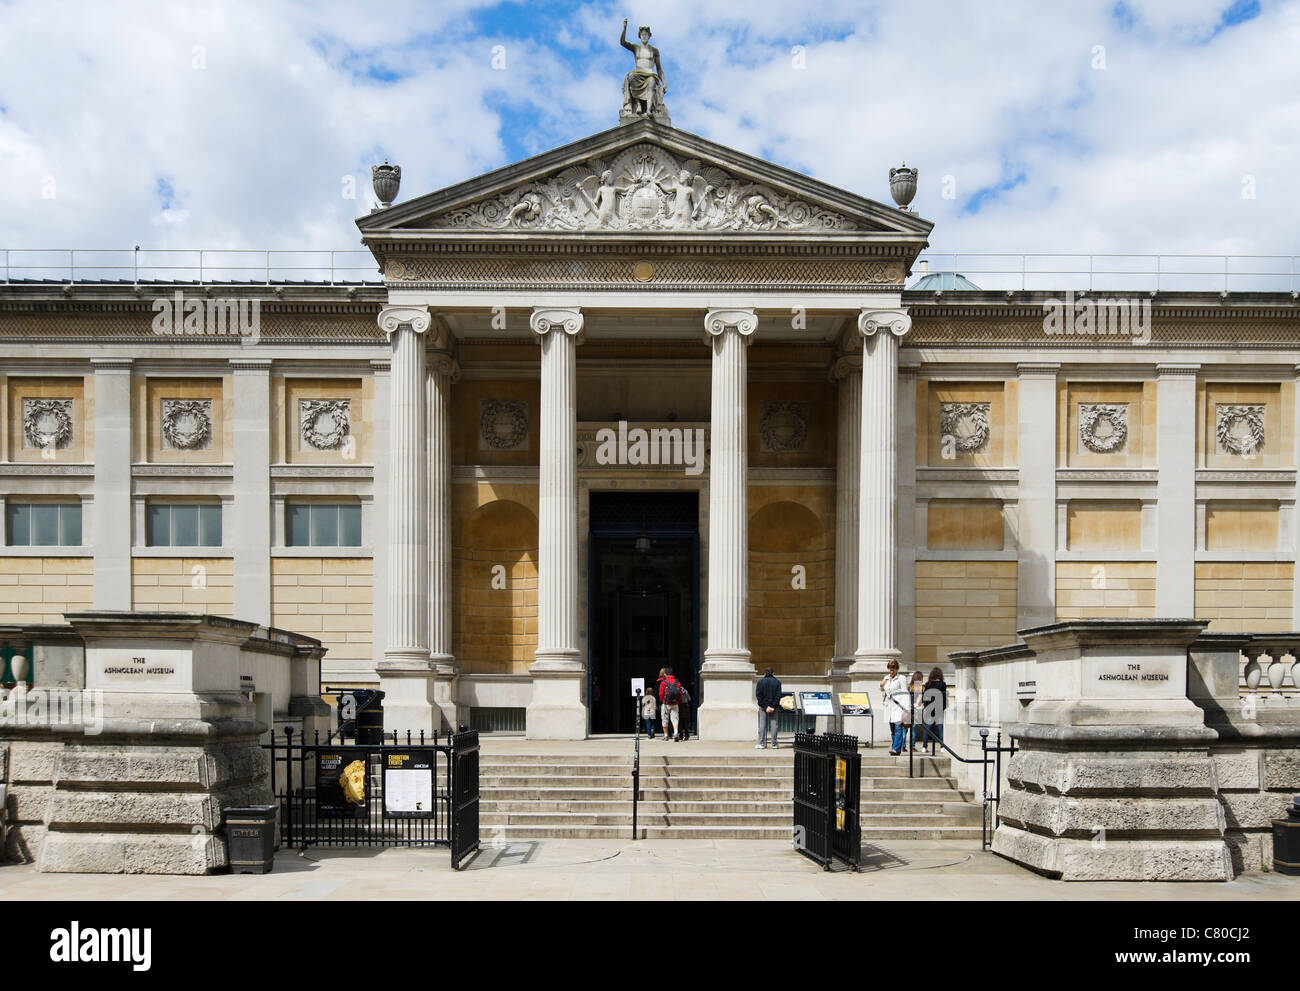 Main entrance to the Ashmolean Museum, Beaumont Street, Oxford, Oxfordshire, England, UK - Stock Image